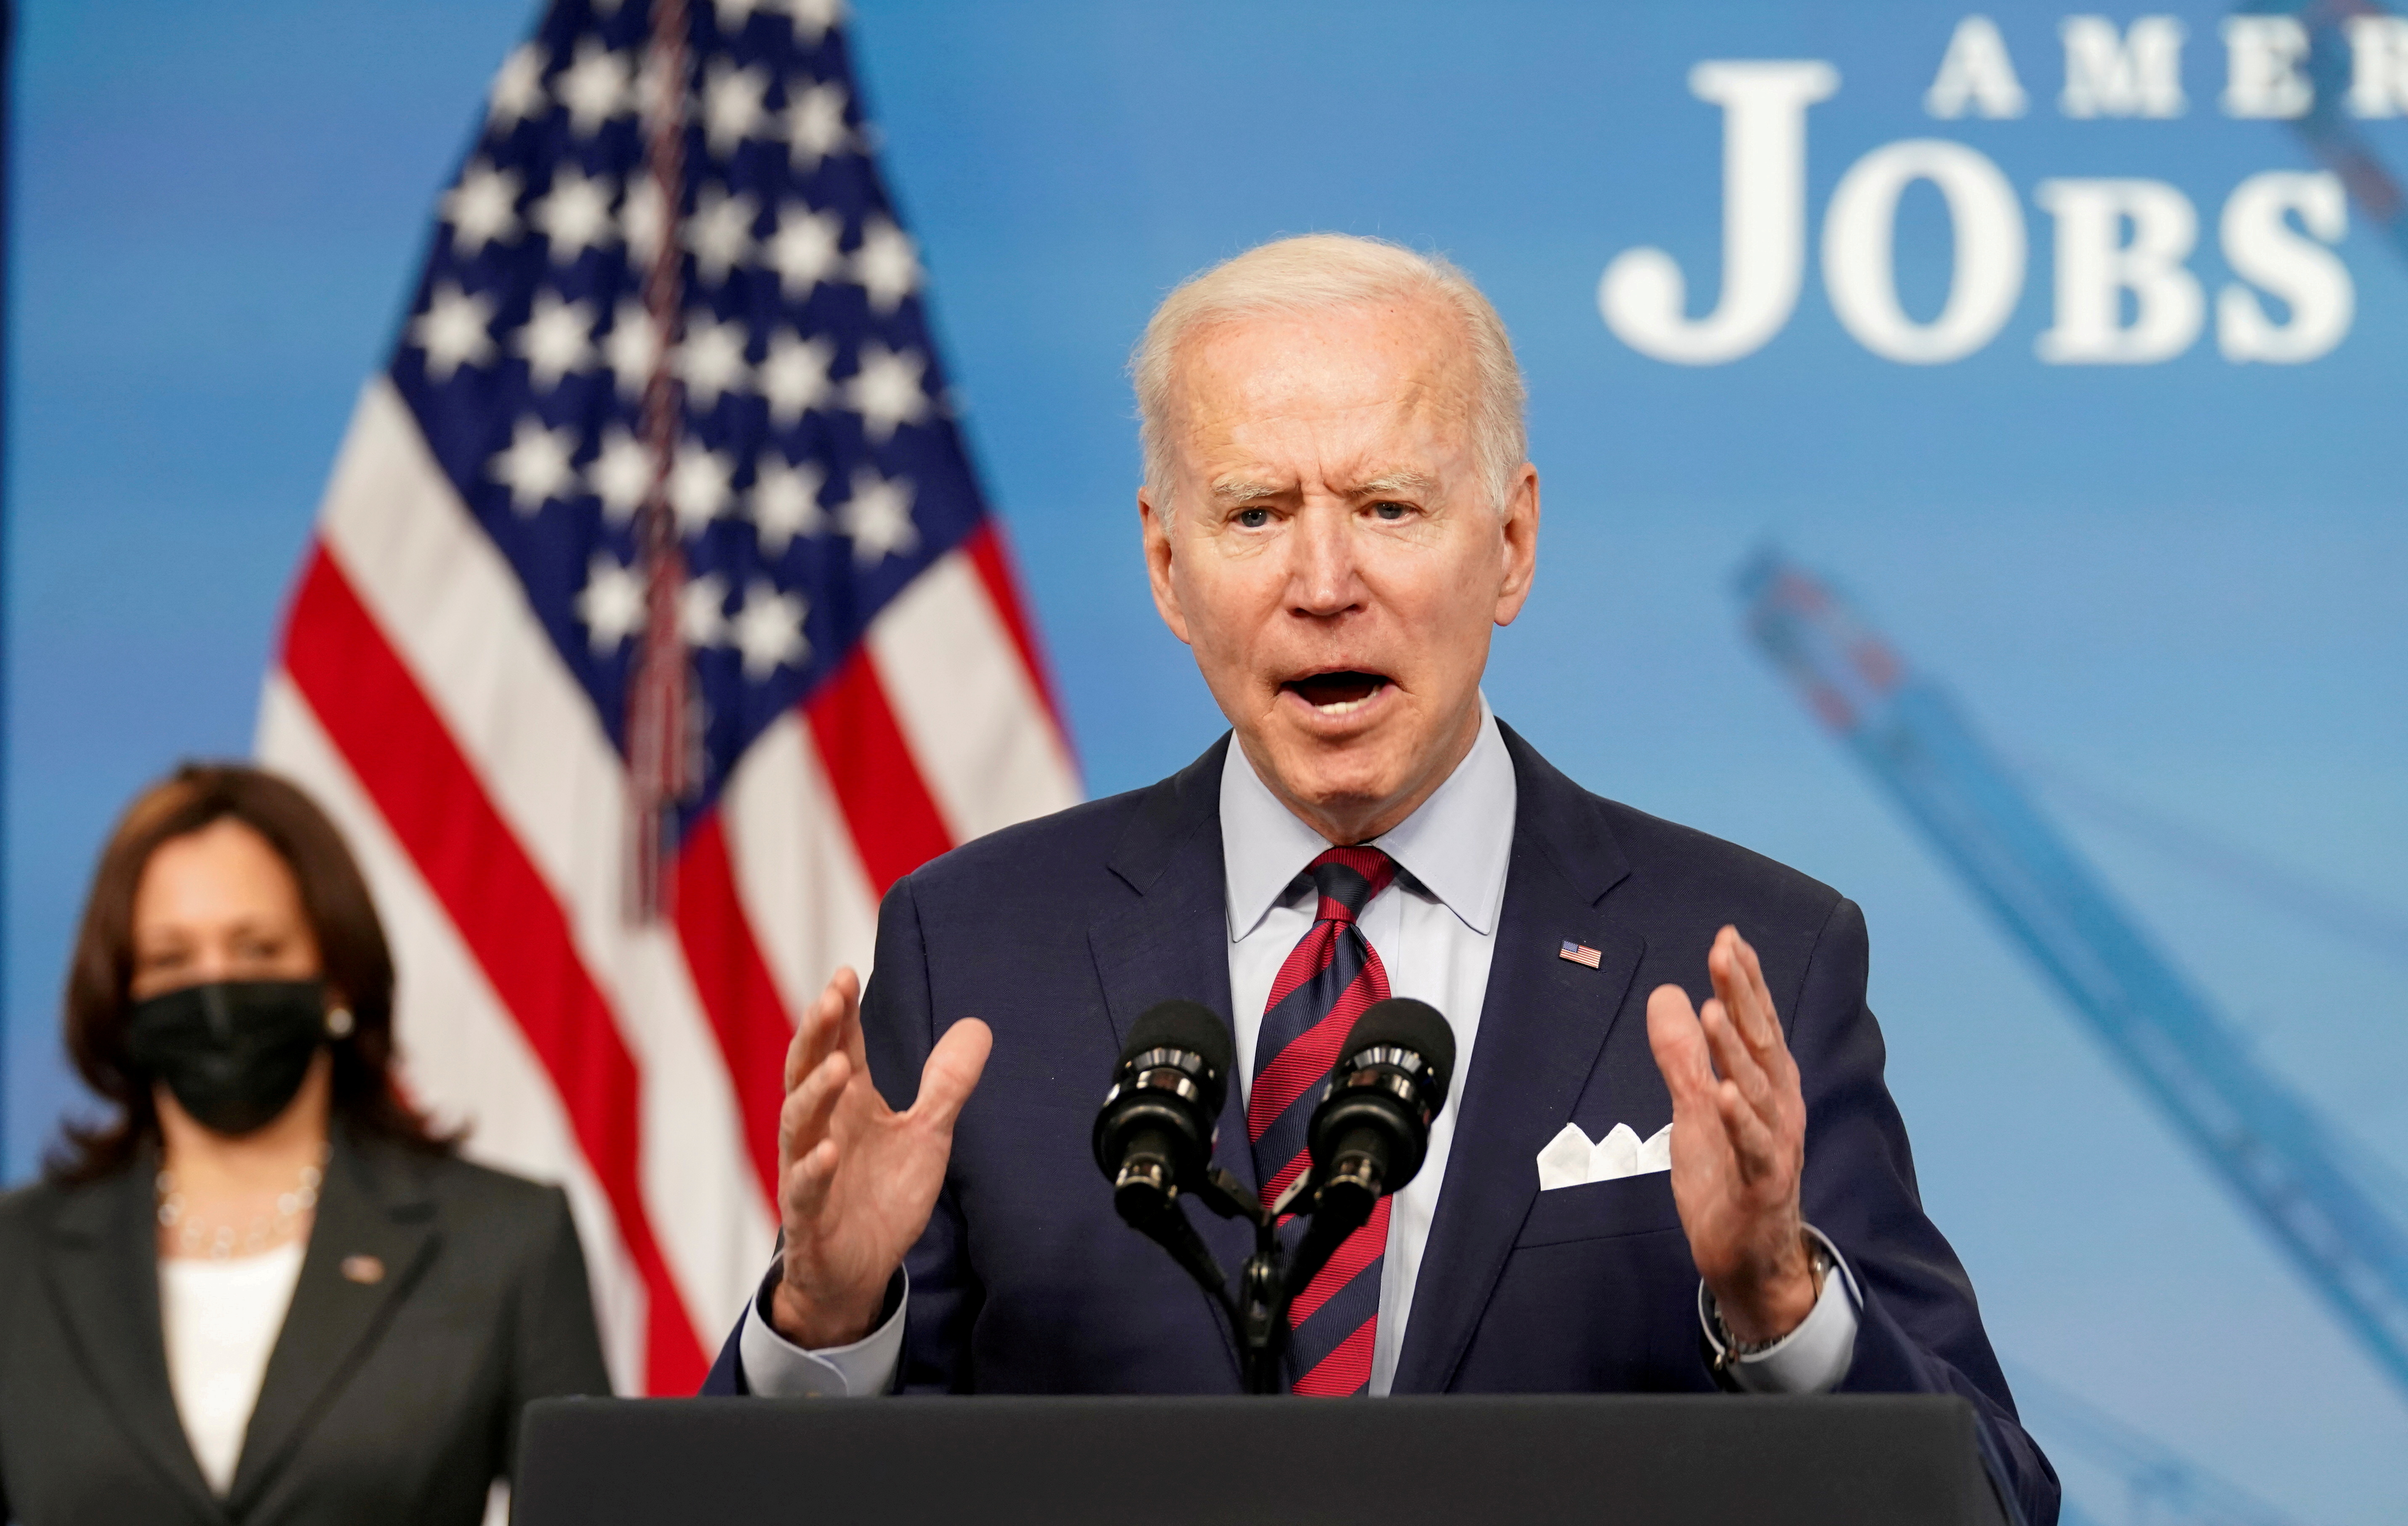 The importance of USMCA for the Biden administration's economic and foreign policy